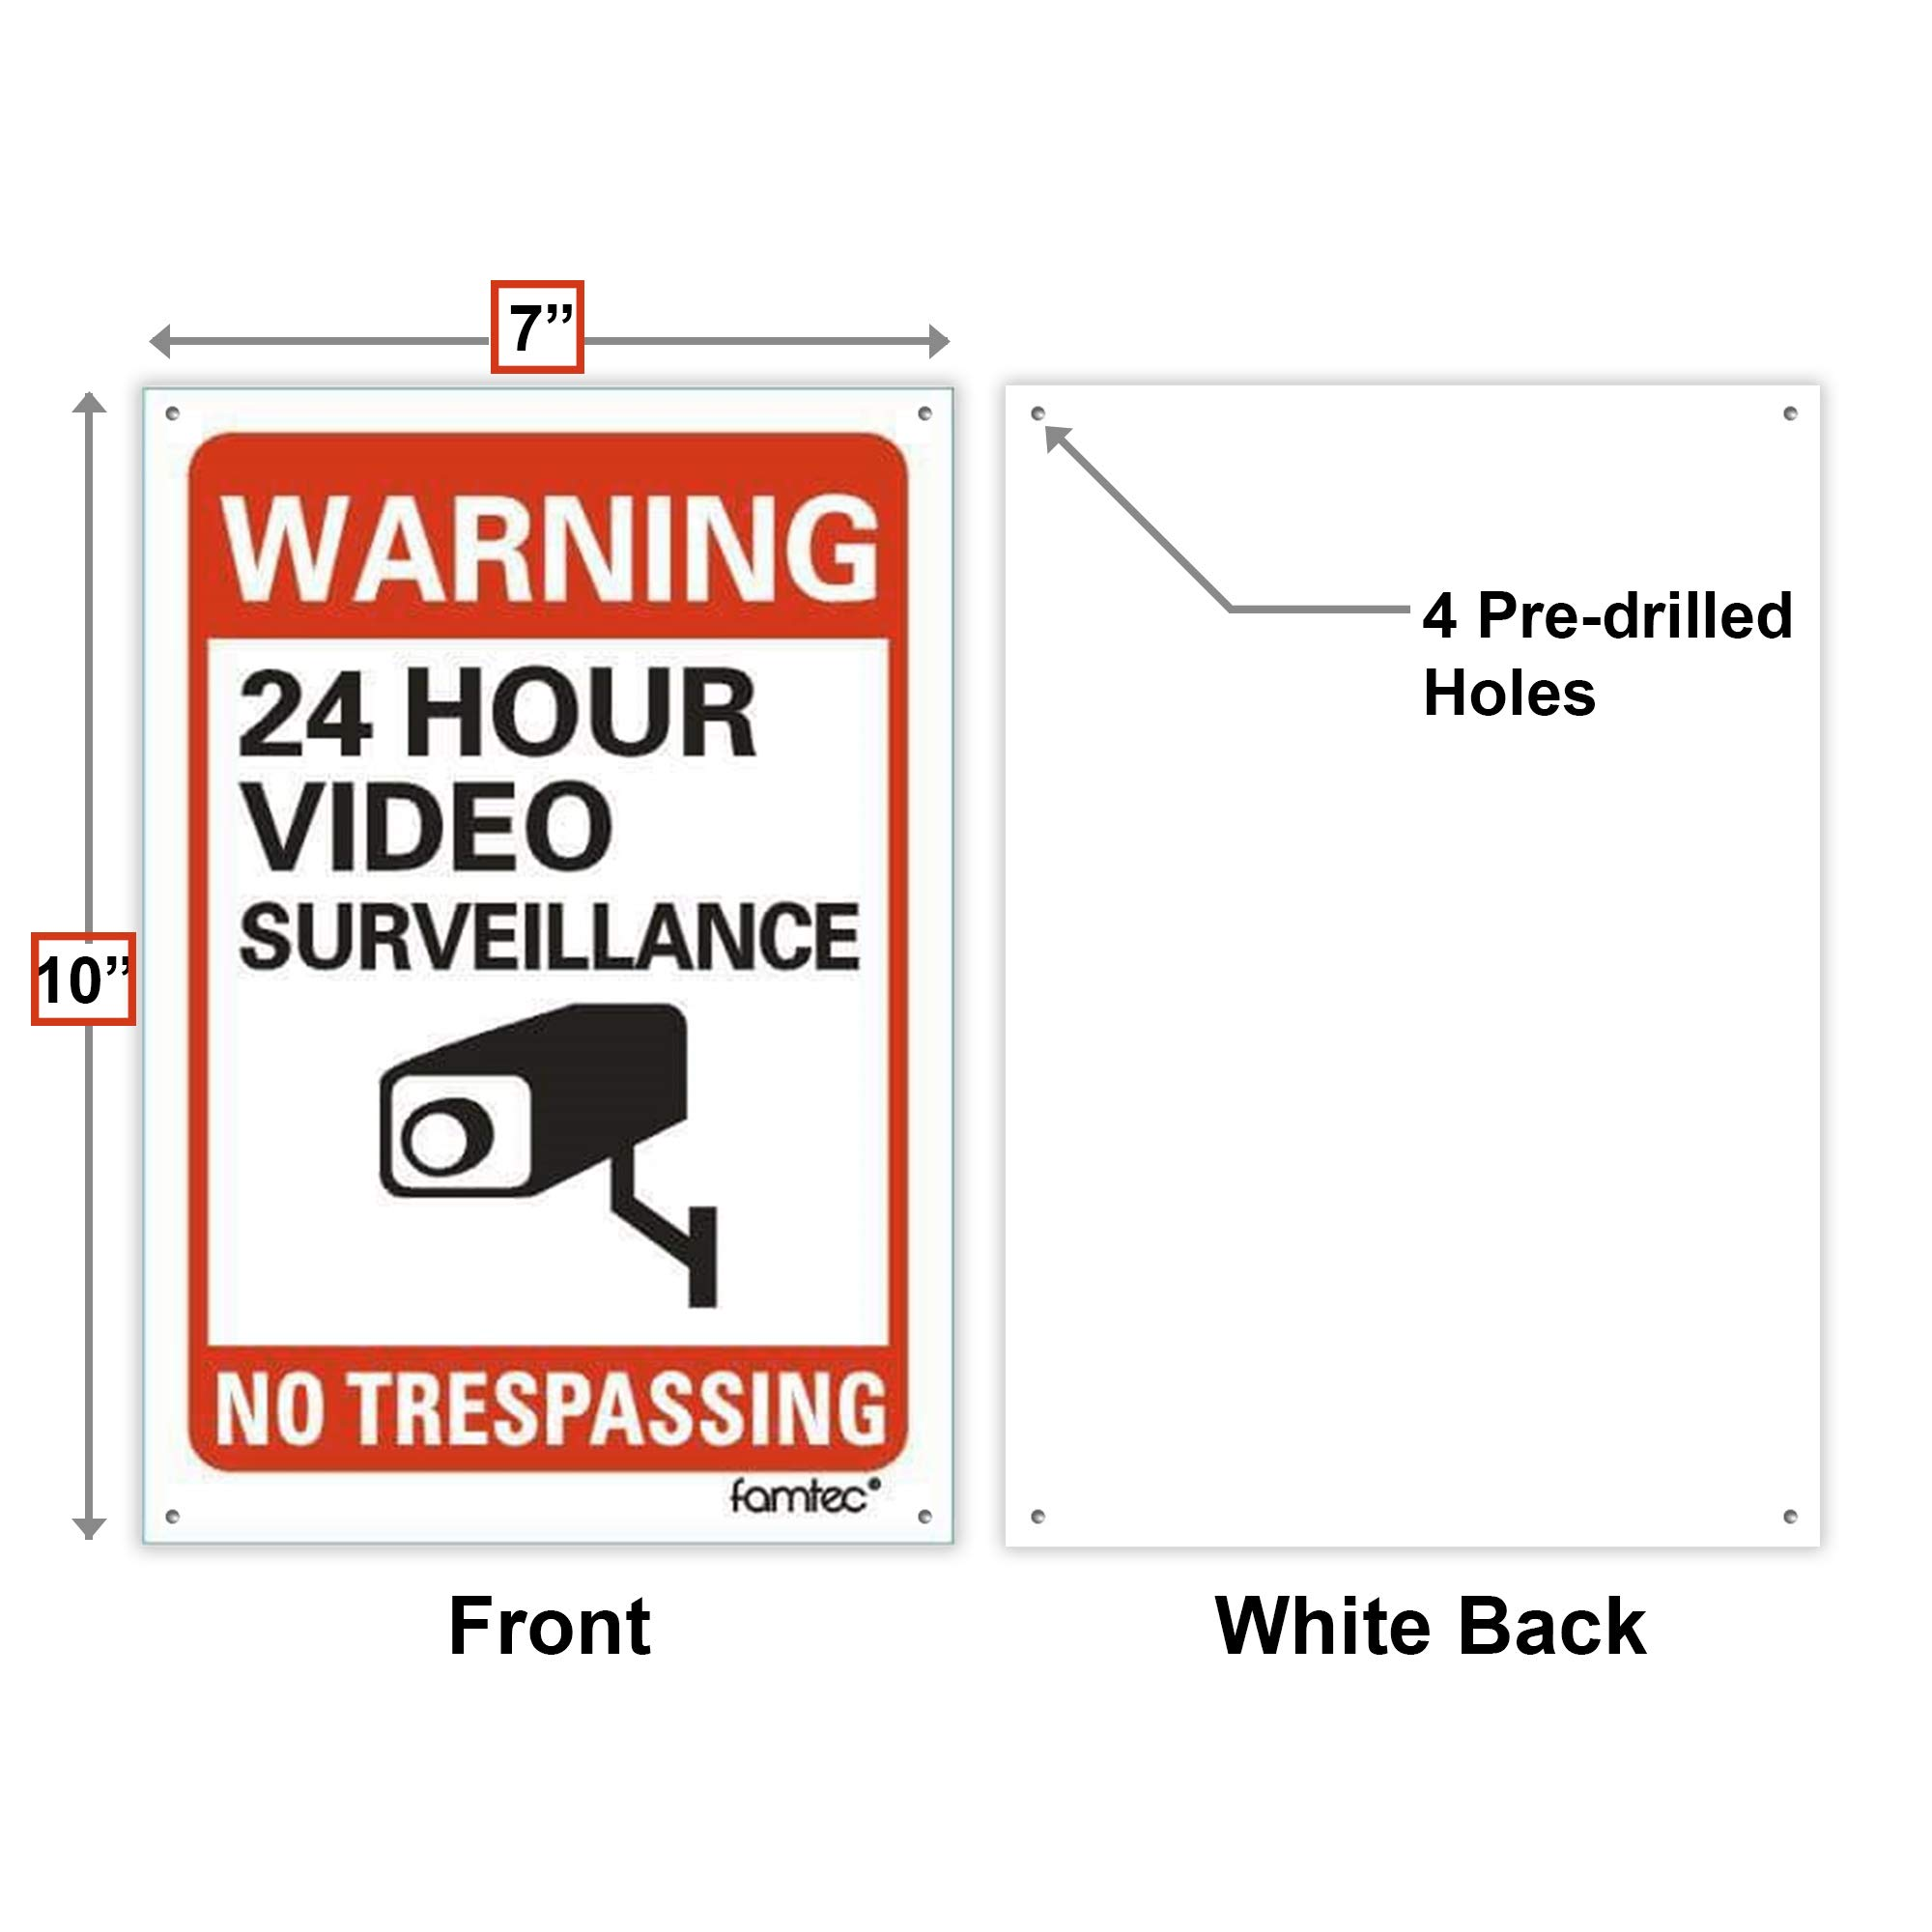 Famtec Video Surveillance Sign Outdoor Warning Sign | 7''x 10'' Aluminum | Indoor Outdoor | Home Business CCTV Security Camera | Waterproof UV Protected | Red | 7x10, Red | Reflective | 4 Pack by Famtec (Image #3)